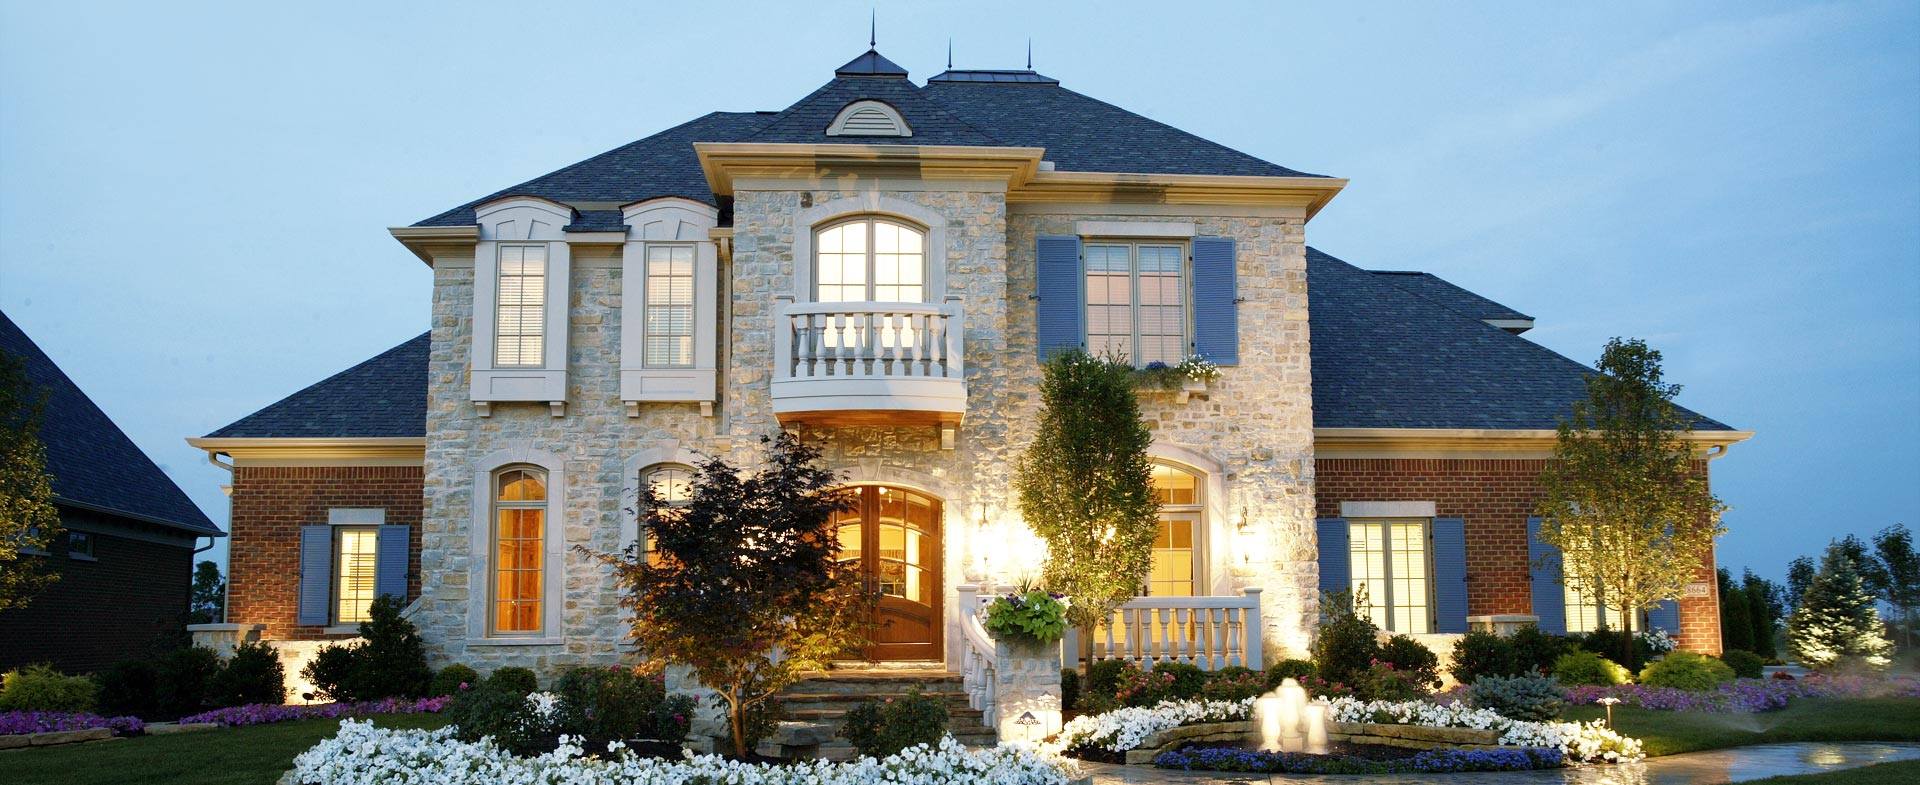 Marino Custom Homes Llc Greater Cincinnati Luxury Home